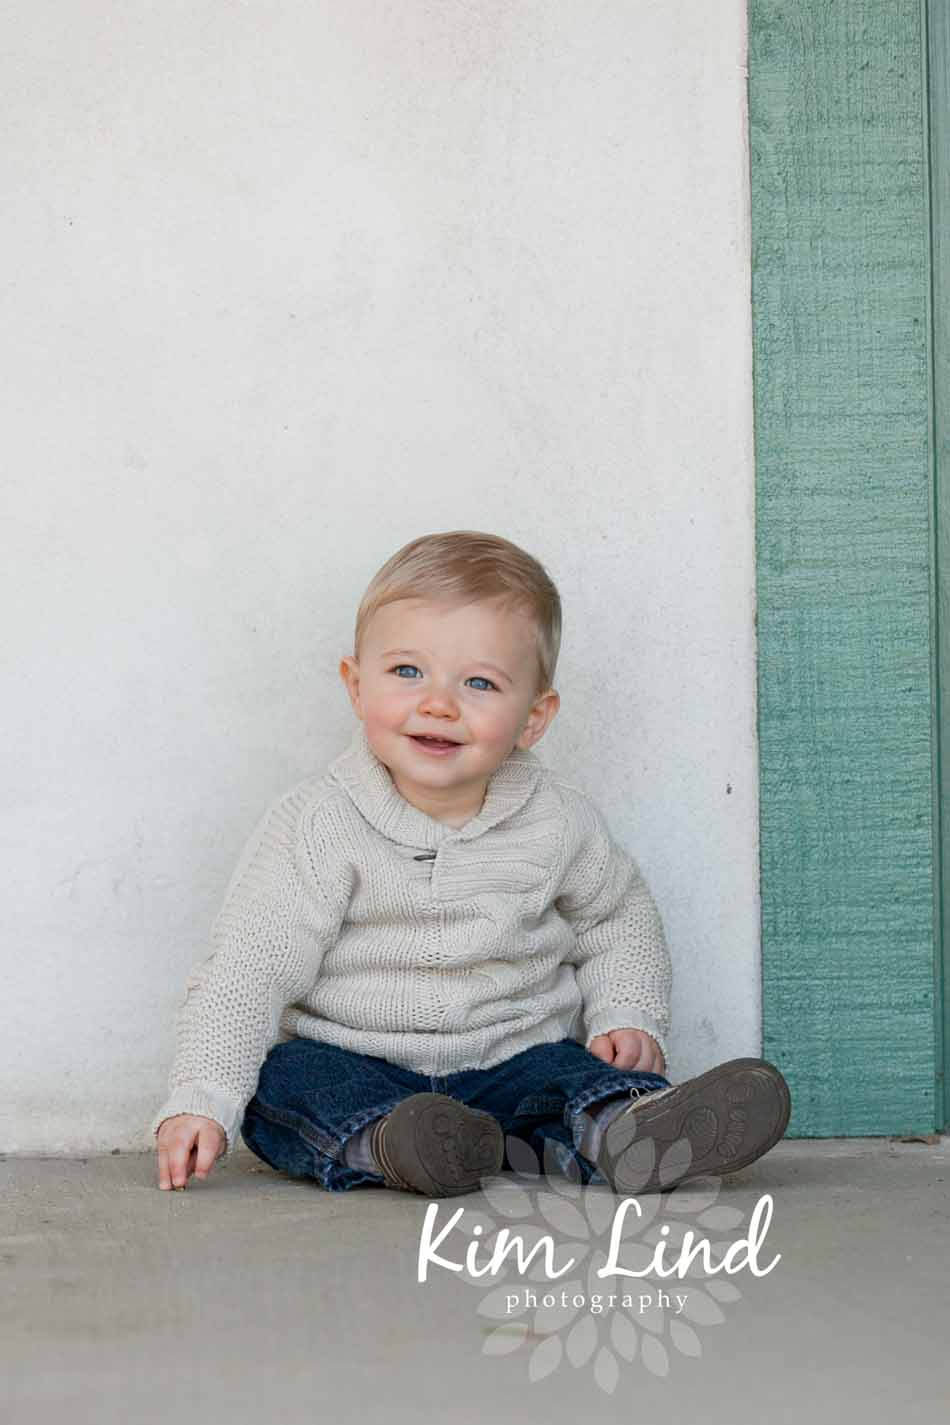 KIM LIND PHOTOGRAPHY {the blog}: Dominic turns one! | Kim